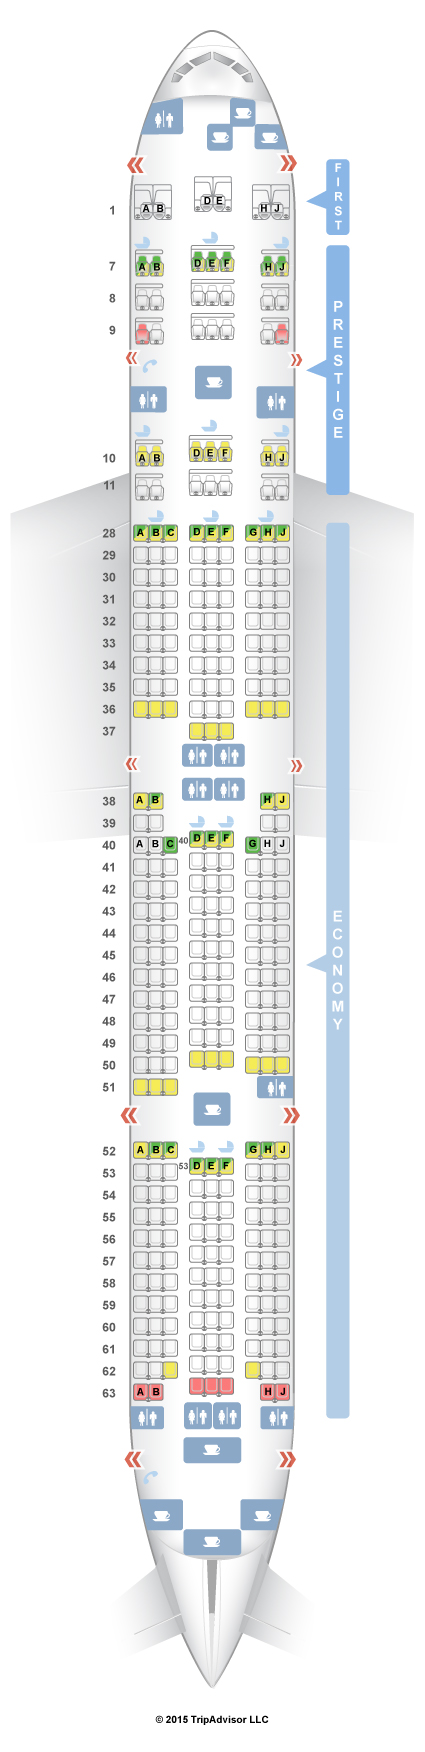 Seatguru Seat Map Korean Air Seatguru